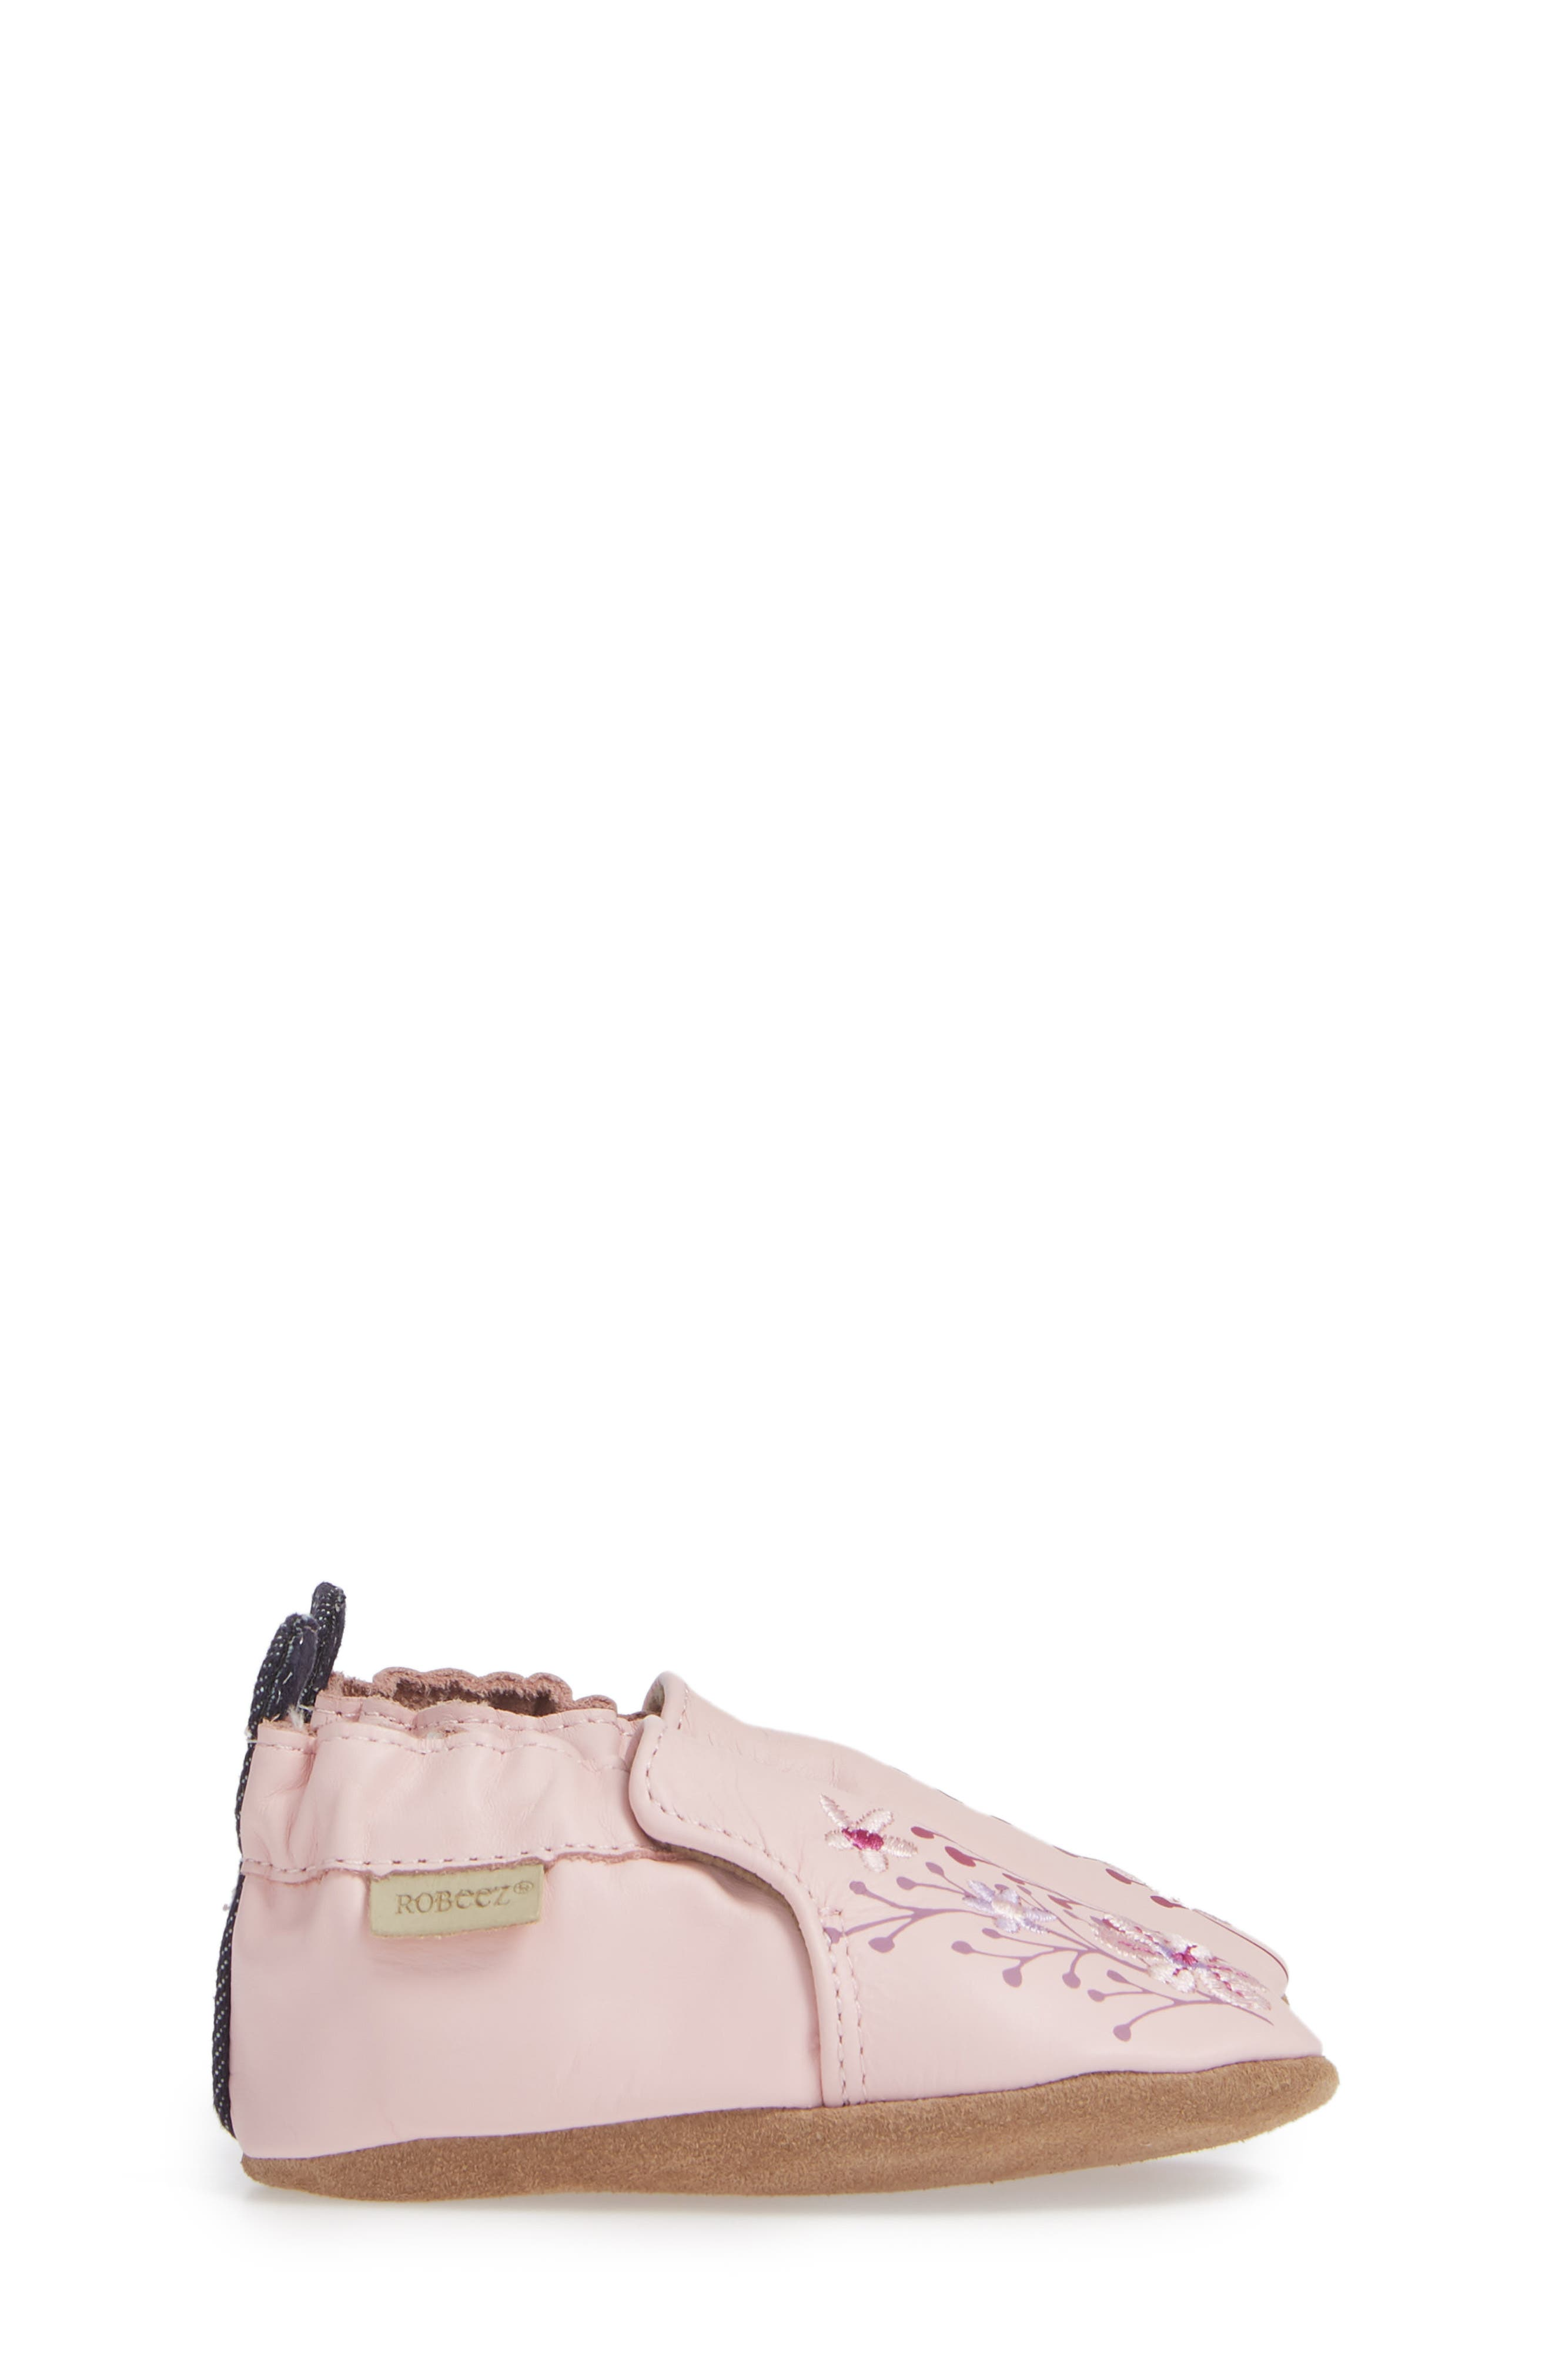 Blooming Floral Crib Shoe,                             Alternate thumbnail 3, color,                             LIGHT PINK